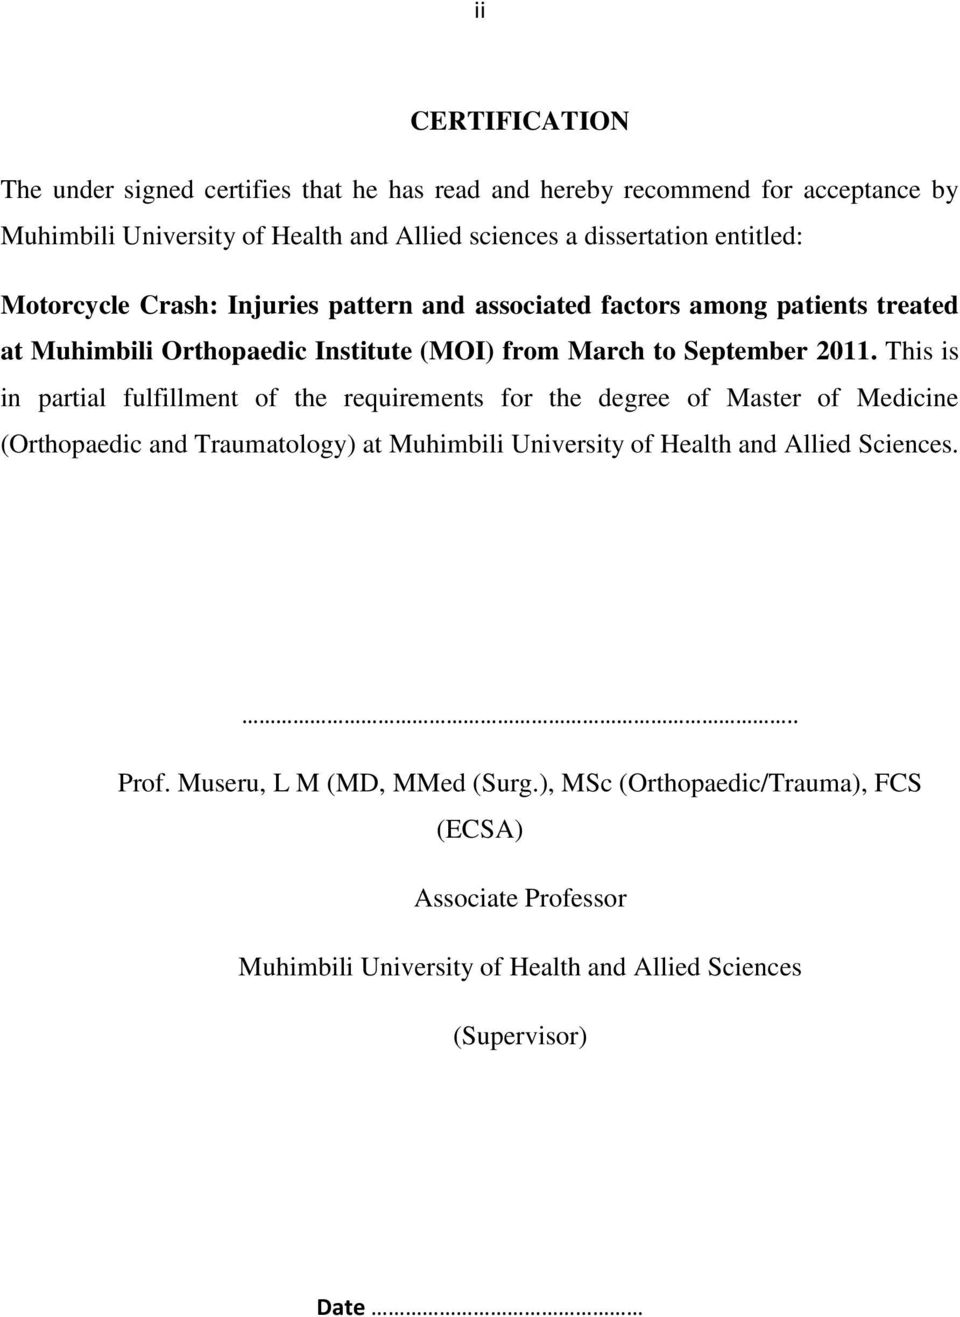 This is in partial fulfillment of the requirements for the degree of Master of Medicine (Orthopaedic and Traumatology) at Muhimbili University of Health and Allied